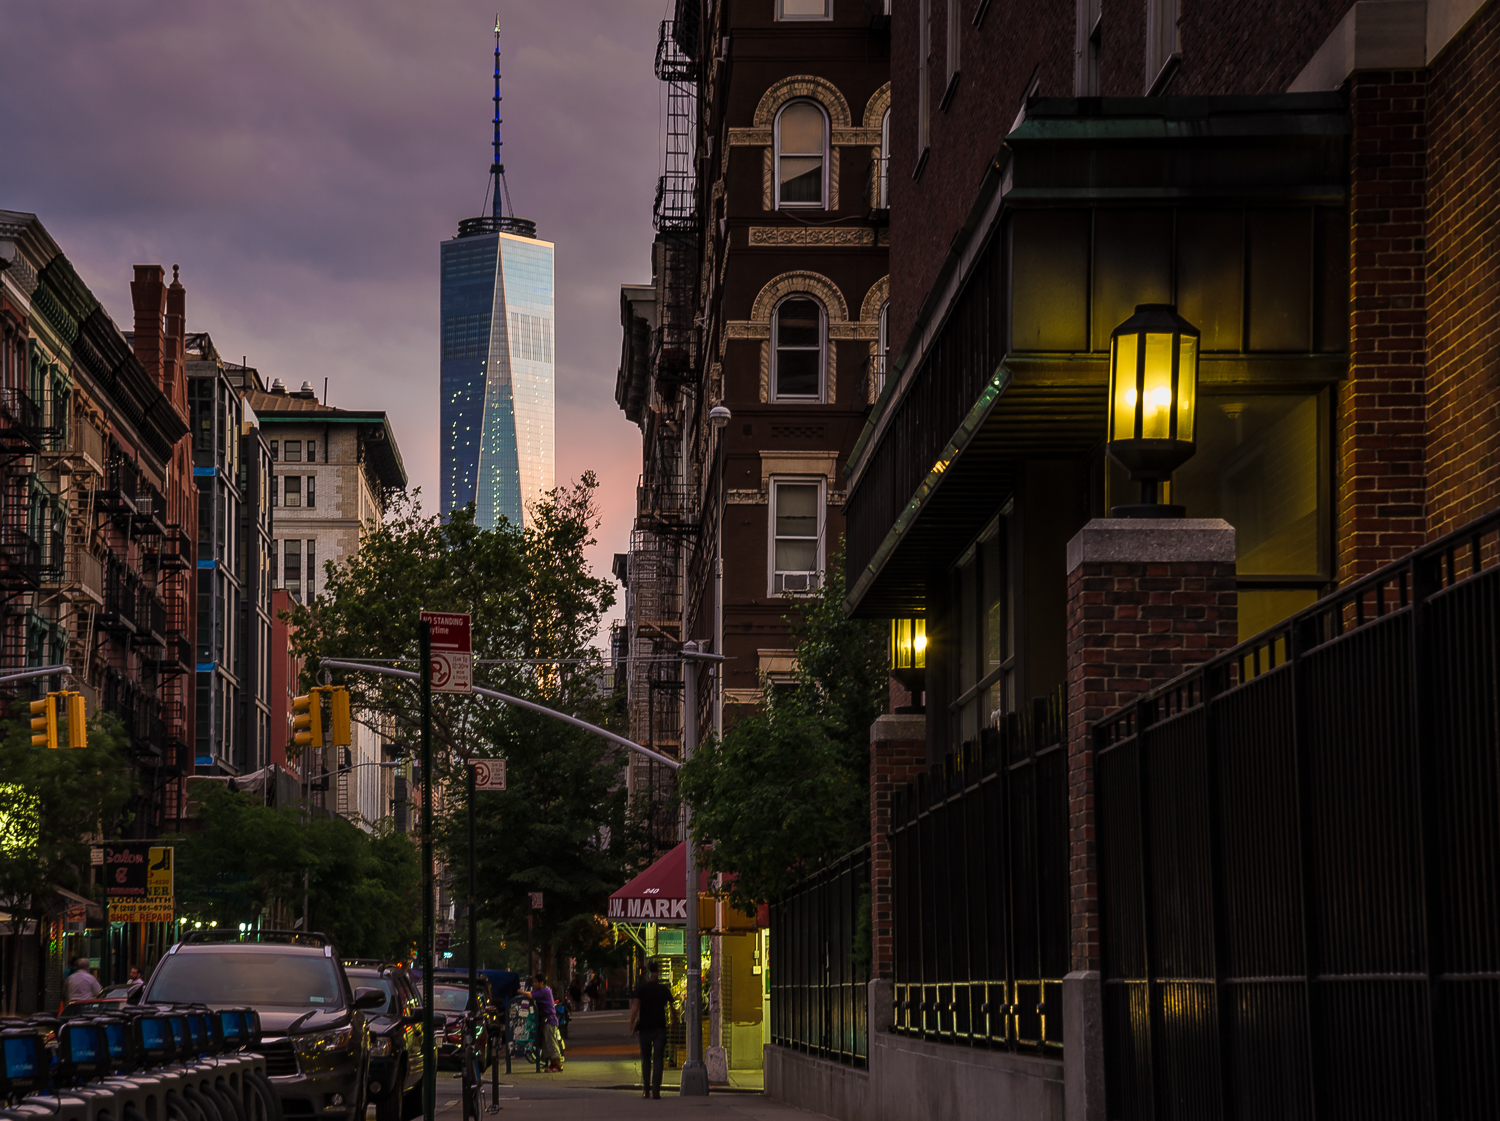 Twilight on 3rd and Sullivan - May28, 2014